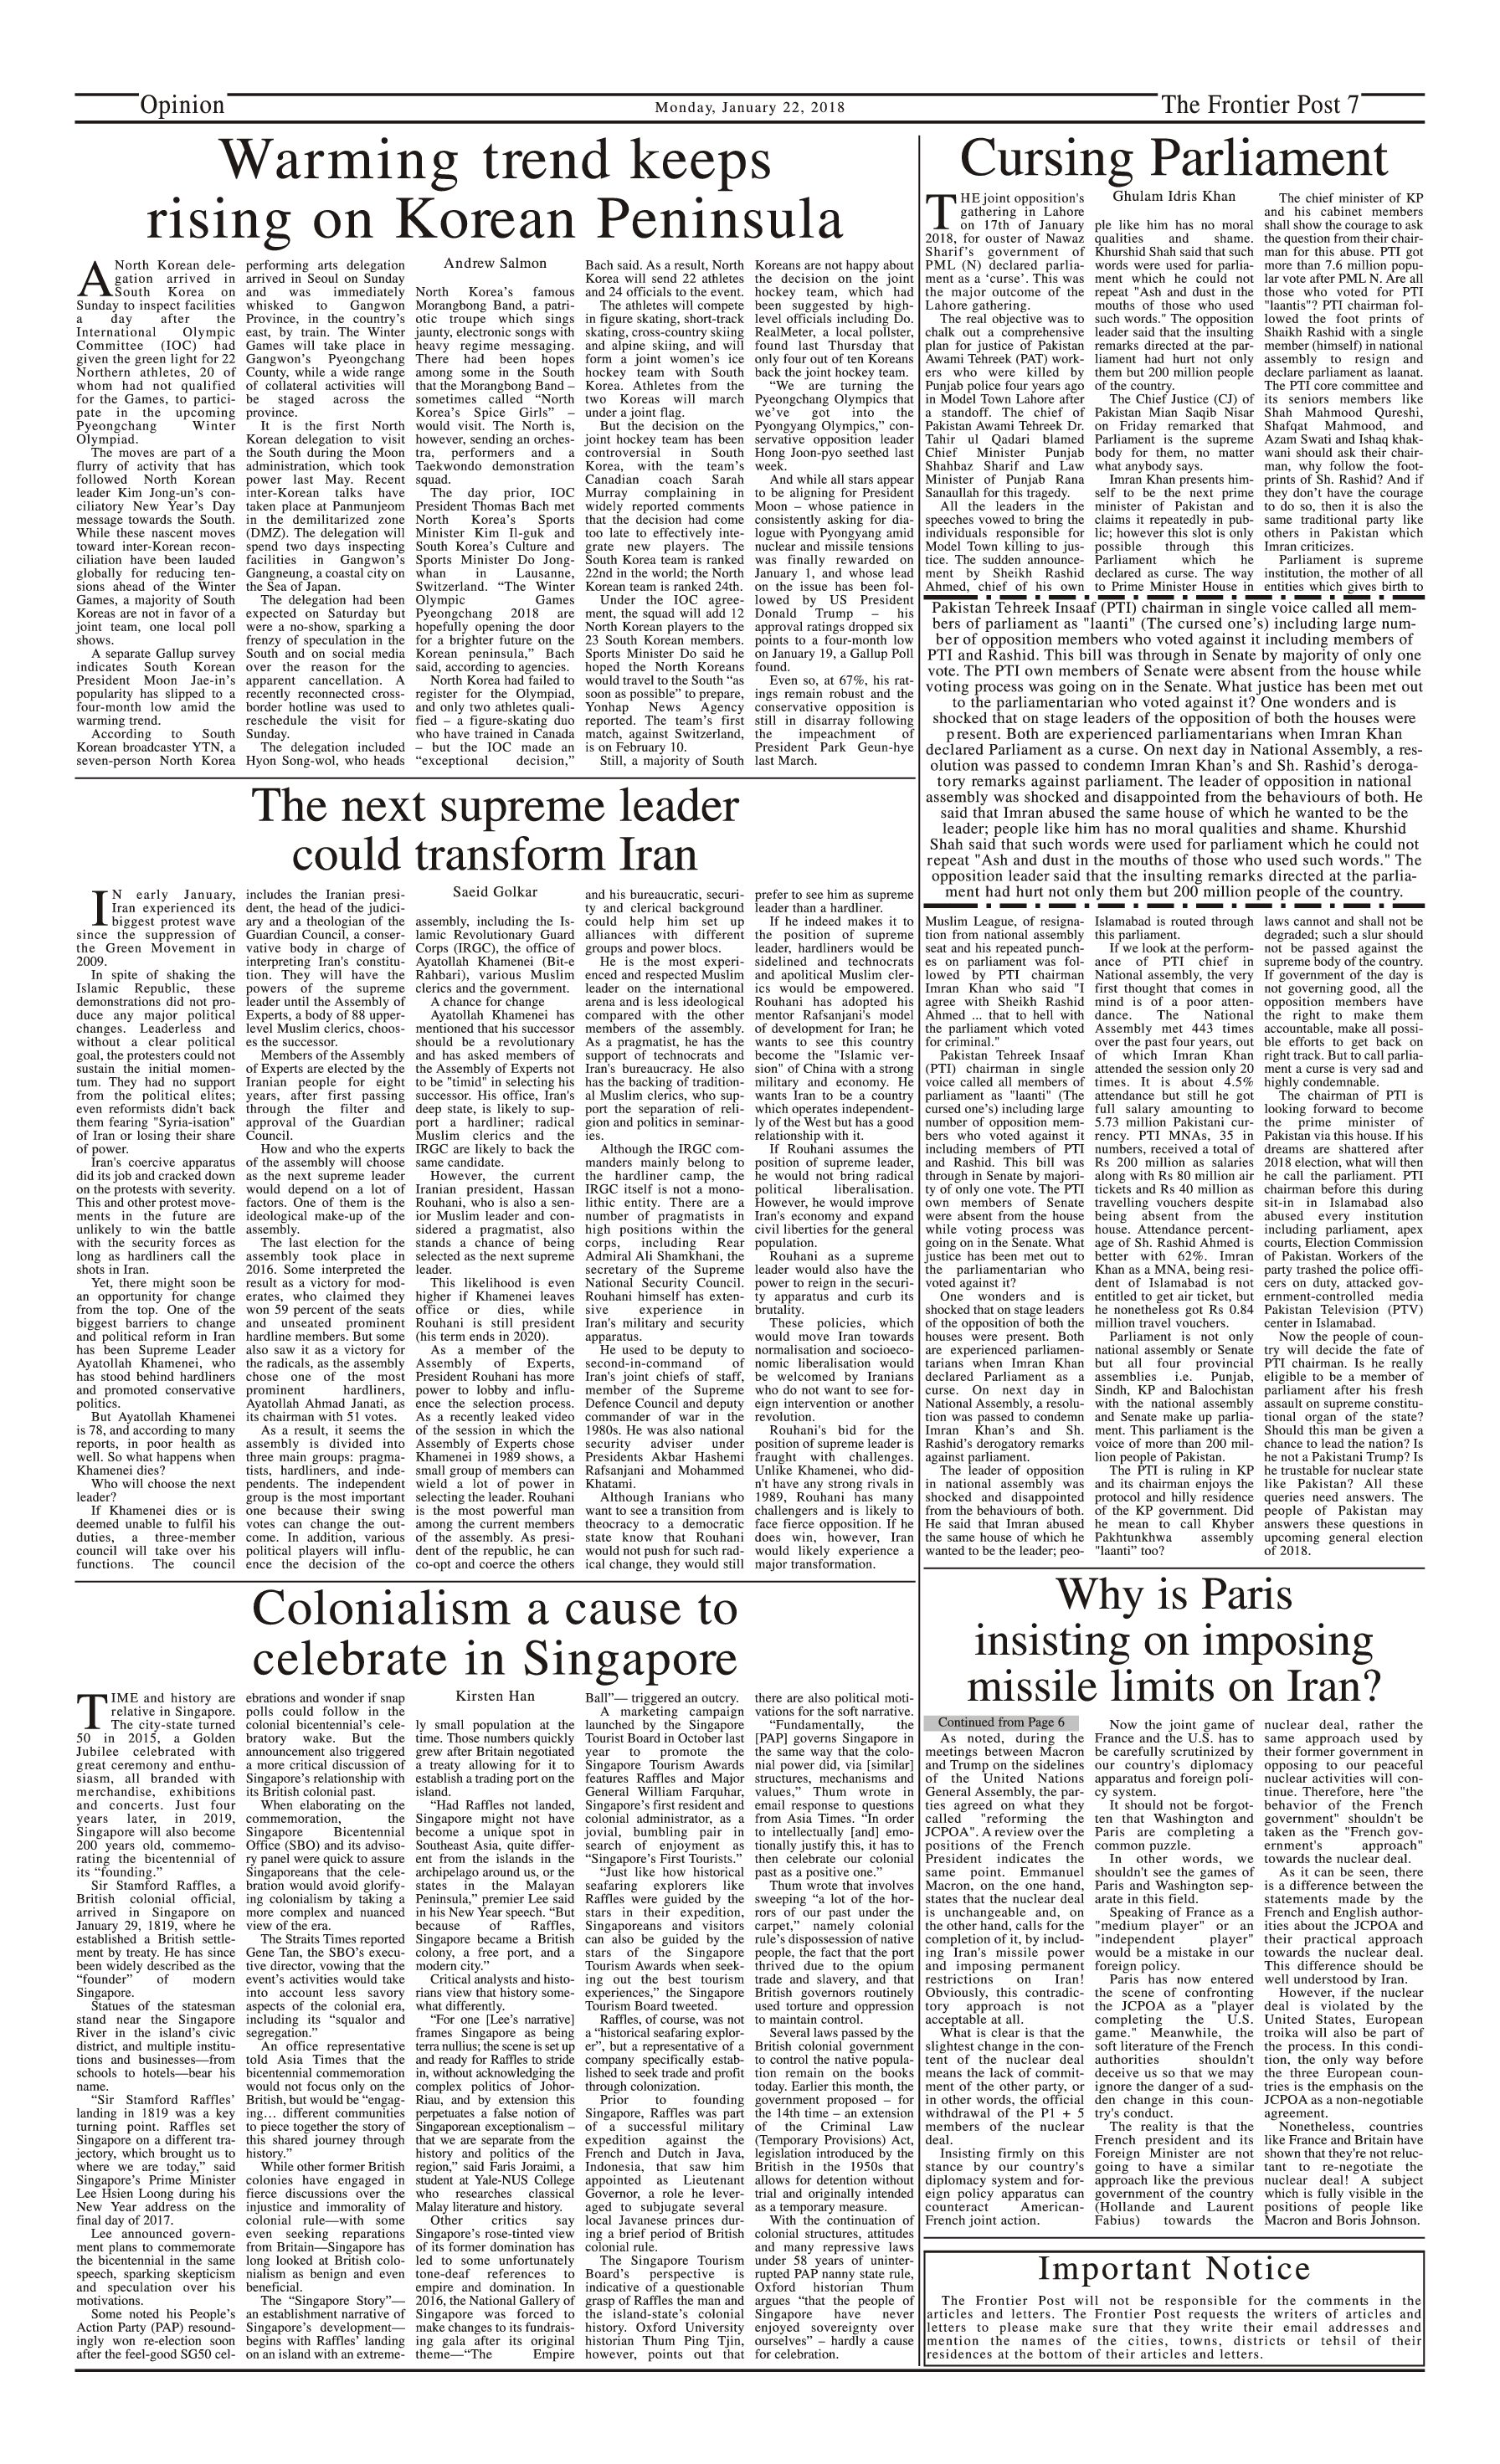 Opinion Page 22-1